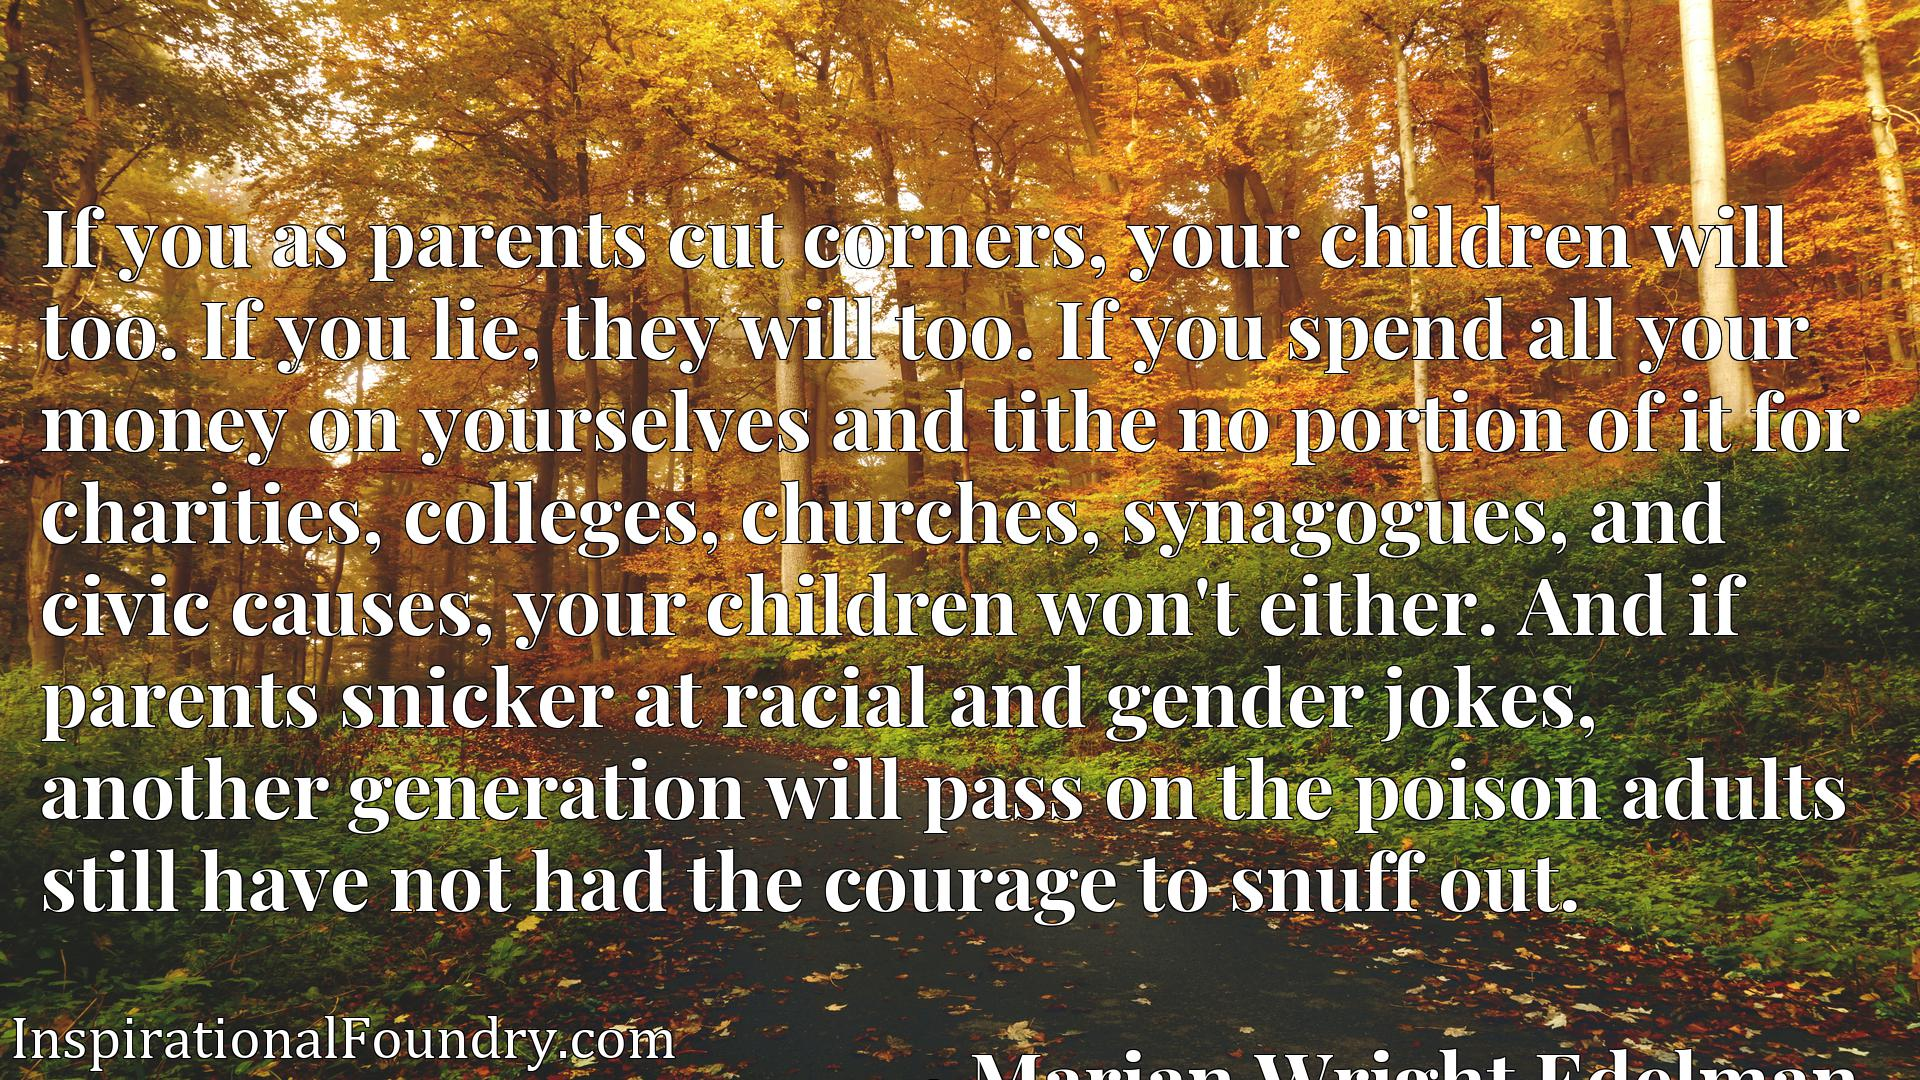 If you as parents cut corners, your children will too. If you lie, they will too. If you spend all your money on yourselves and tithe no portion of it for charities, colleges, churches, synagogues, and civic causes, your children won't either. And if parents snicker at racial and gender jokes, another generation will pass on the poison adults still have not had the courage to snuff out.